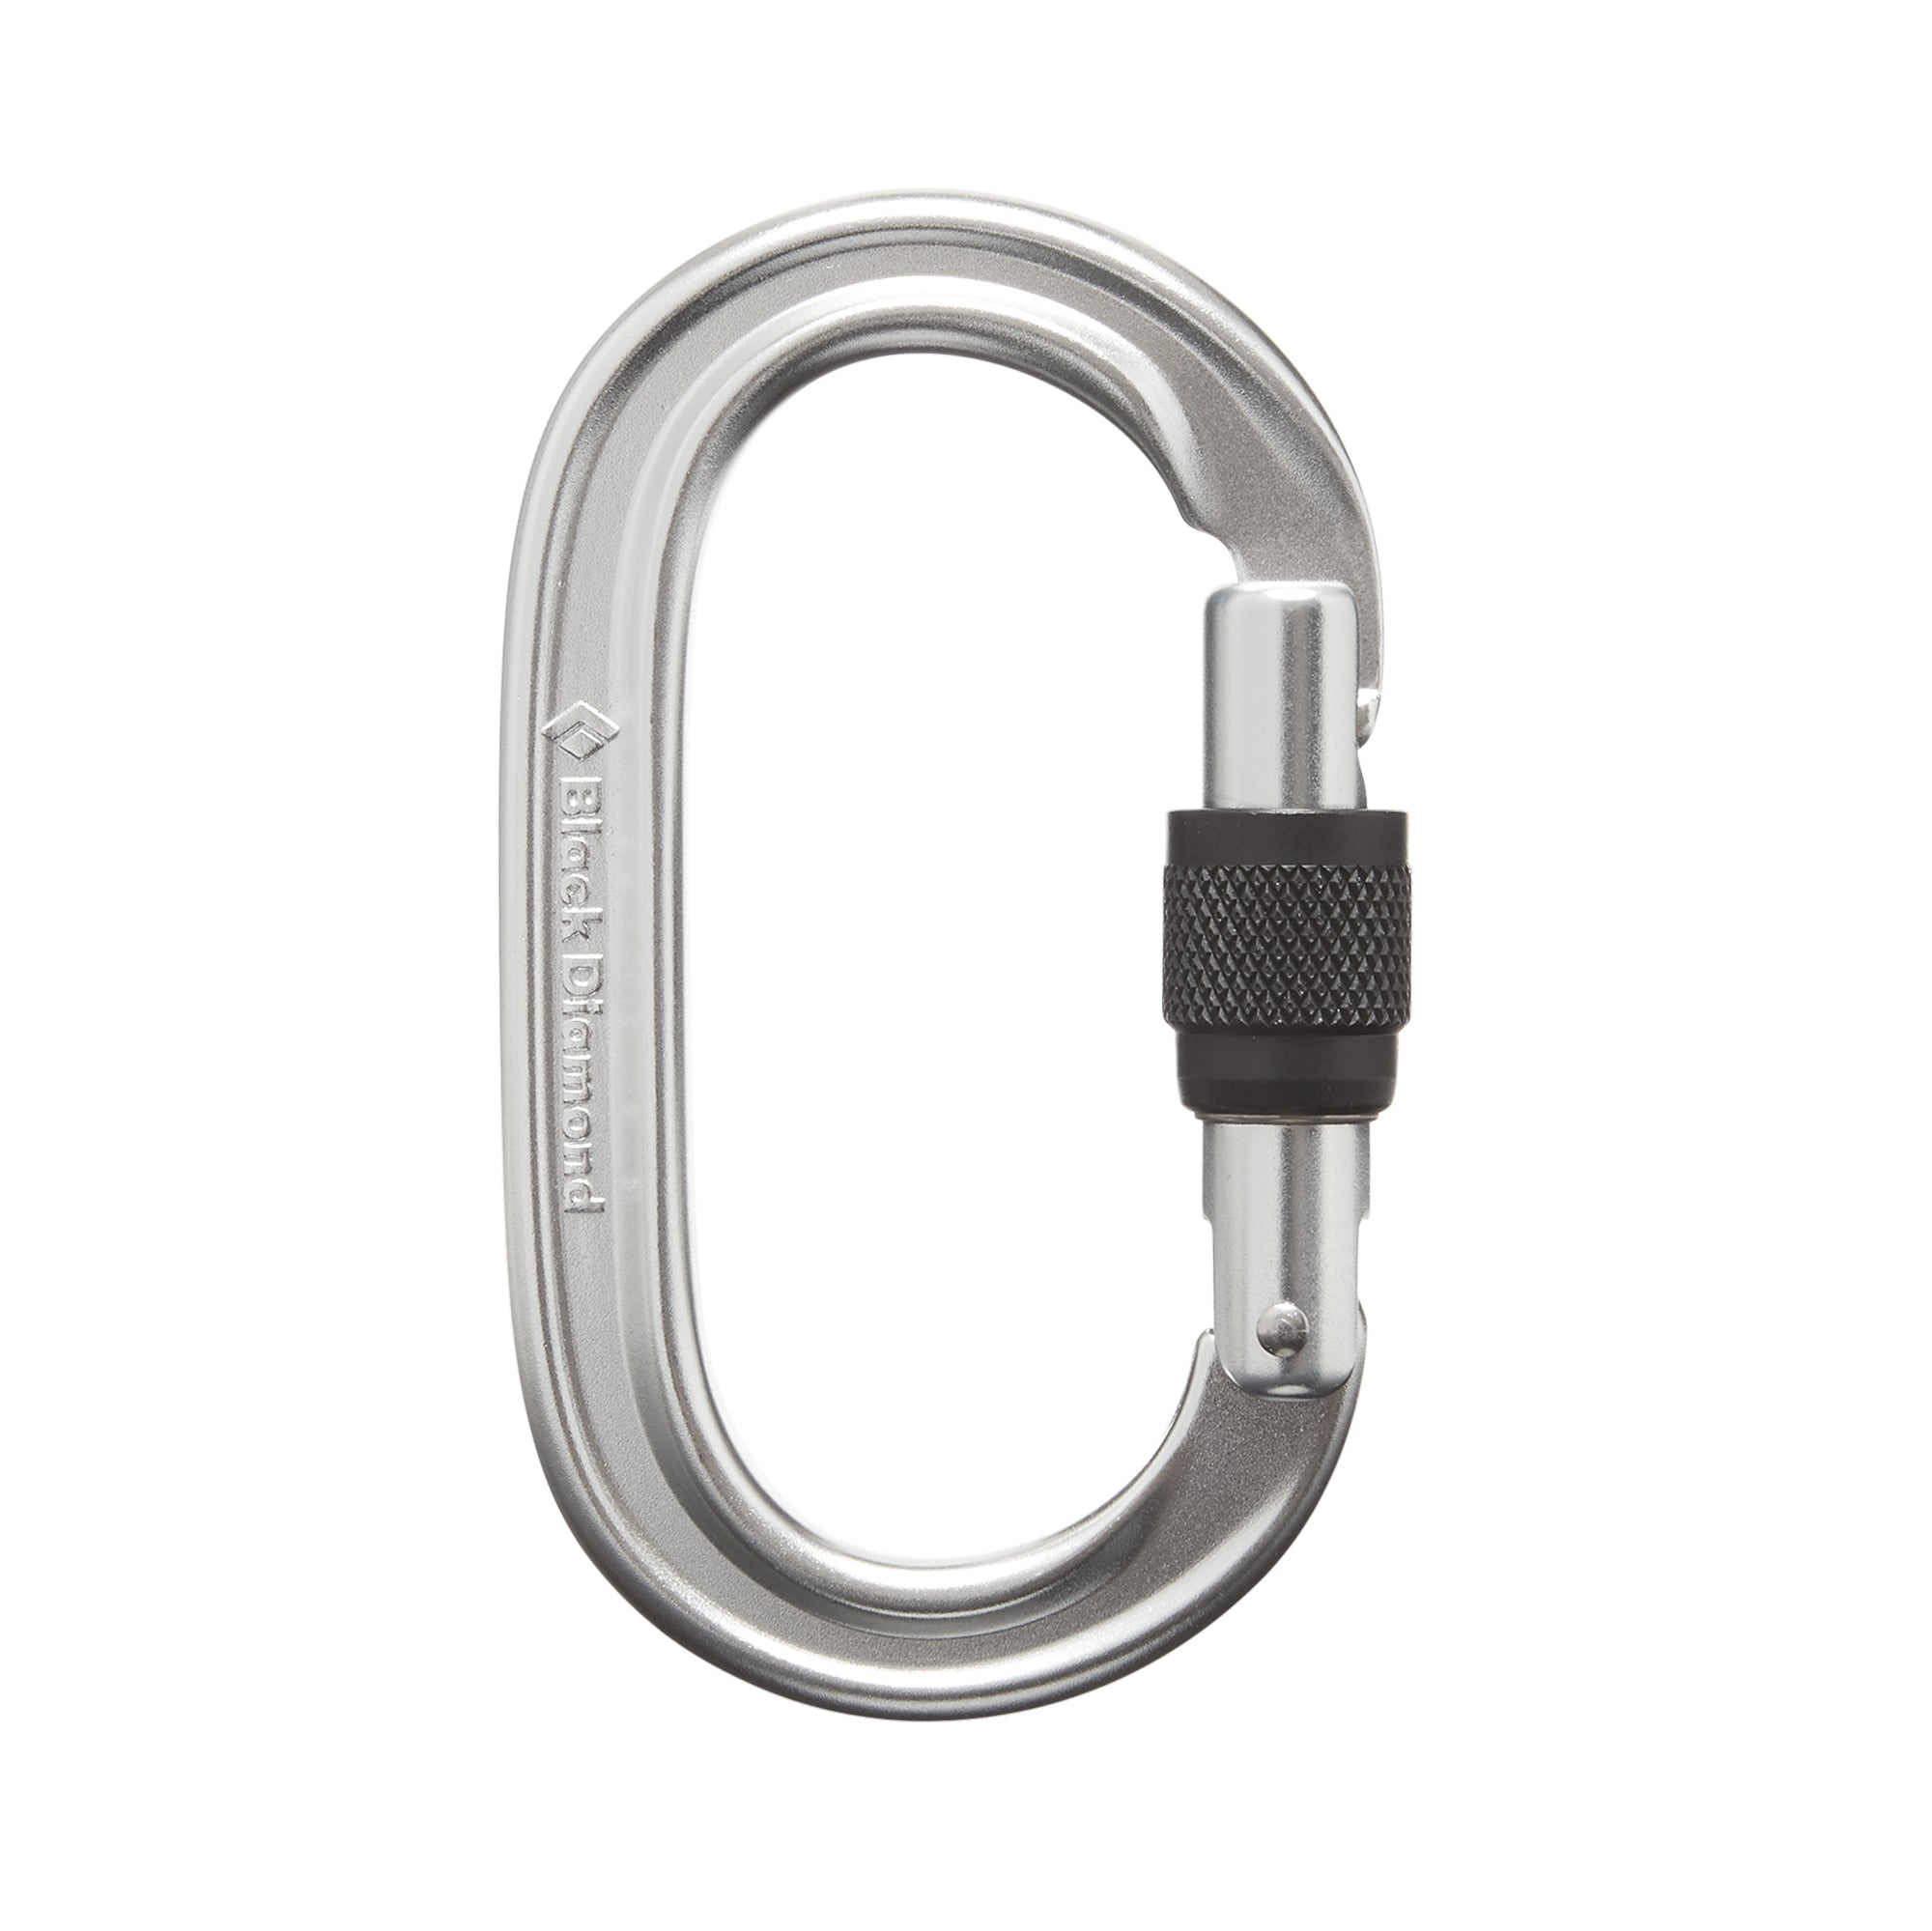 silver oval carabiner with black screwlock in unlocked position